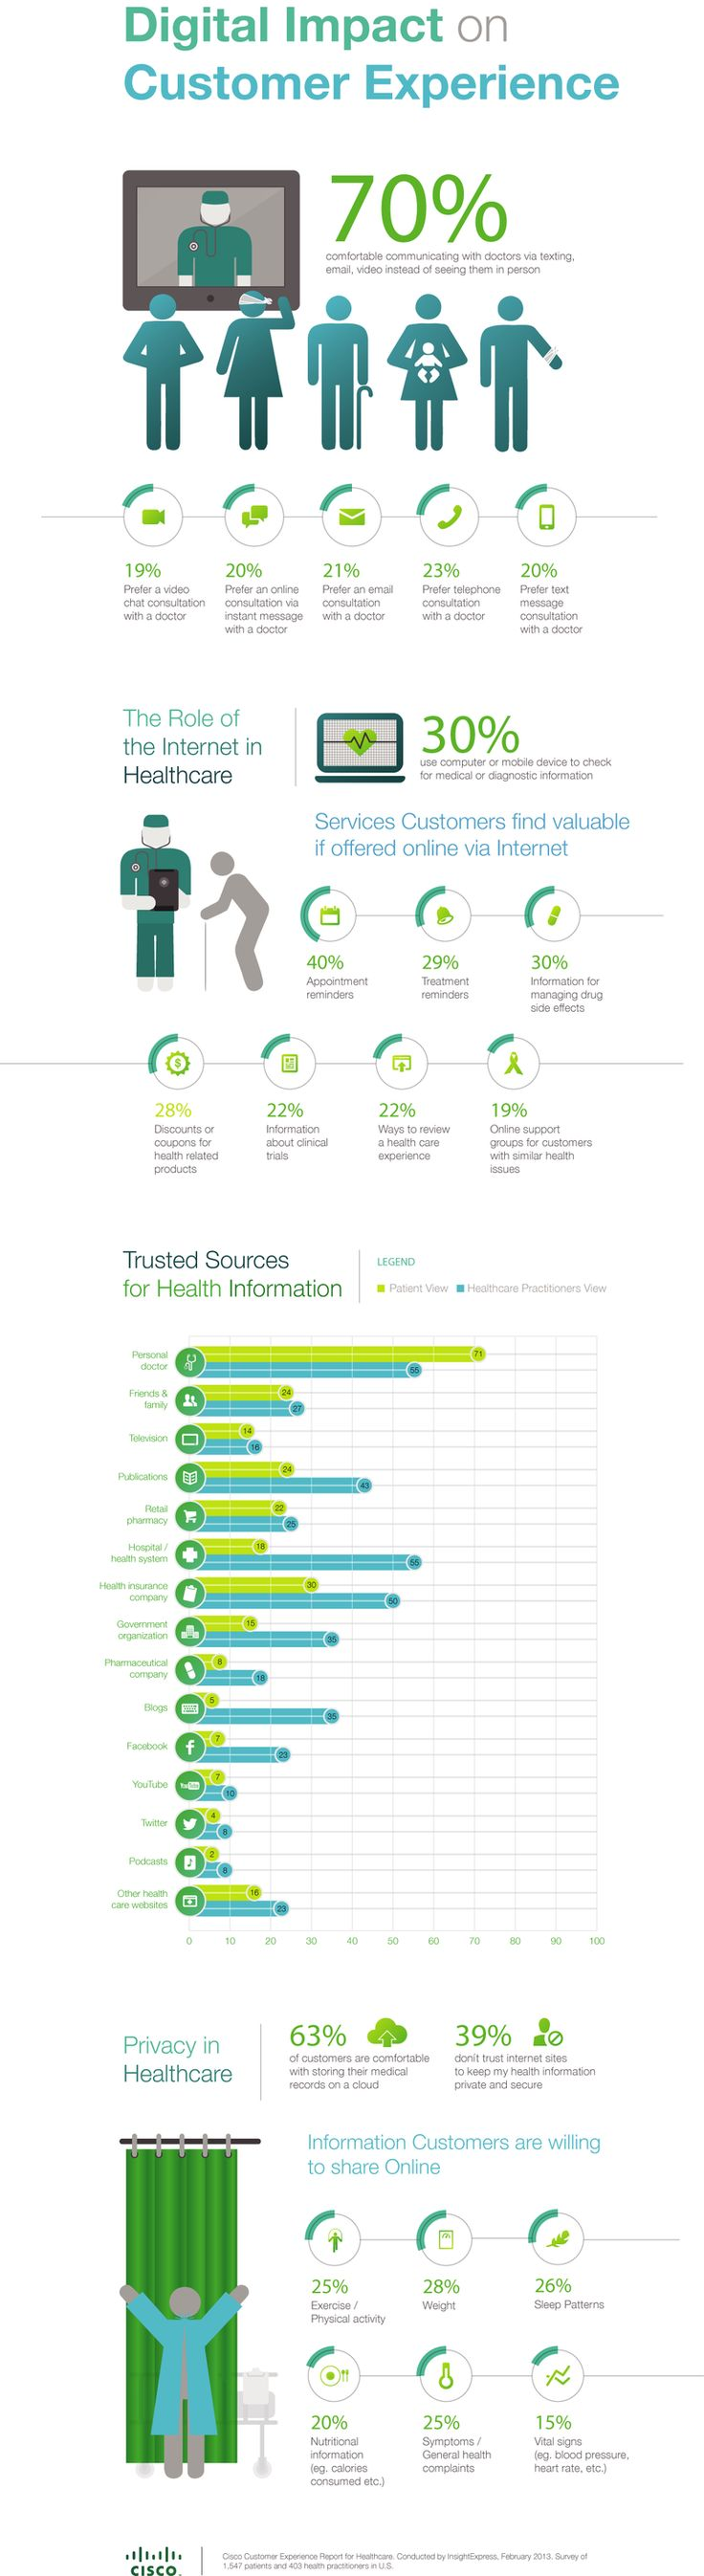 [INFOGRAPHIC] Digital Impact on Customer Experience in Healthcare